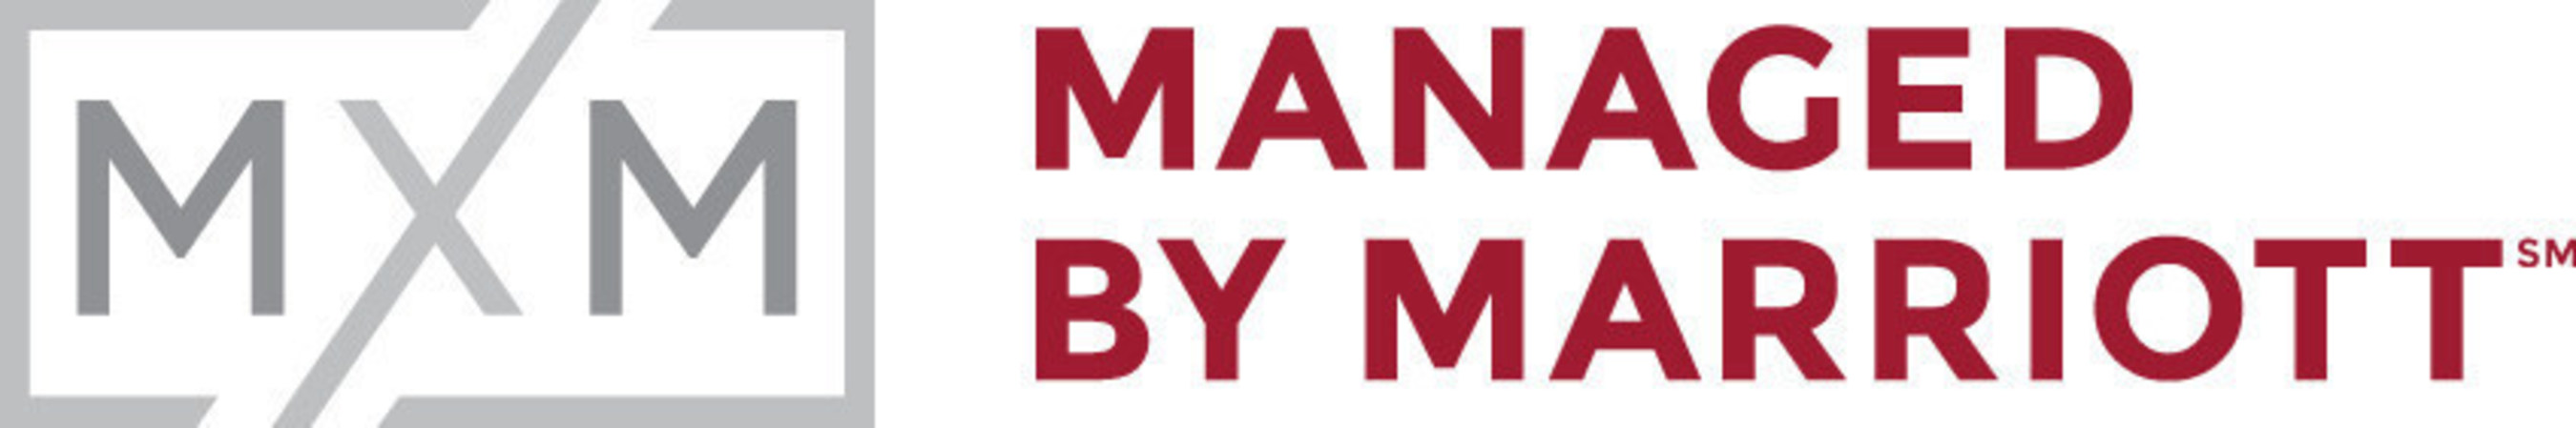 Managed by Marriott logo